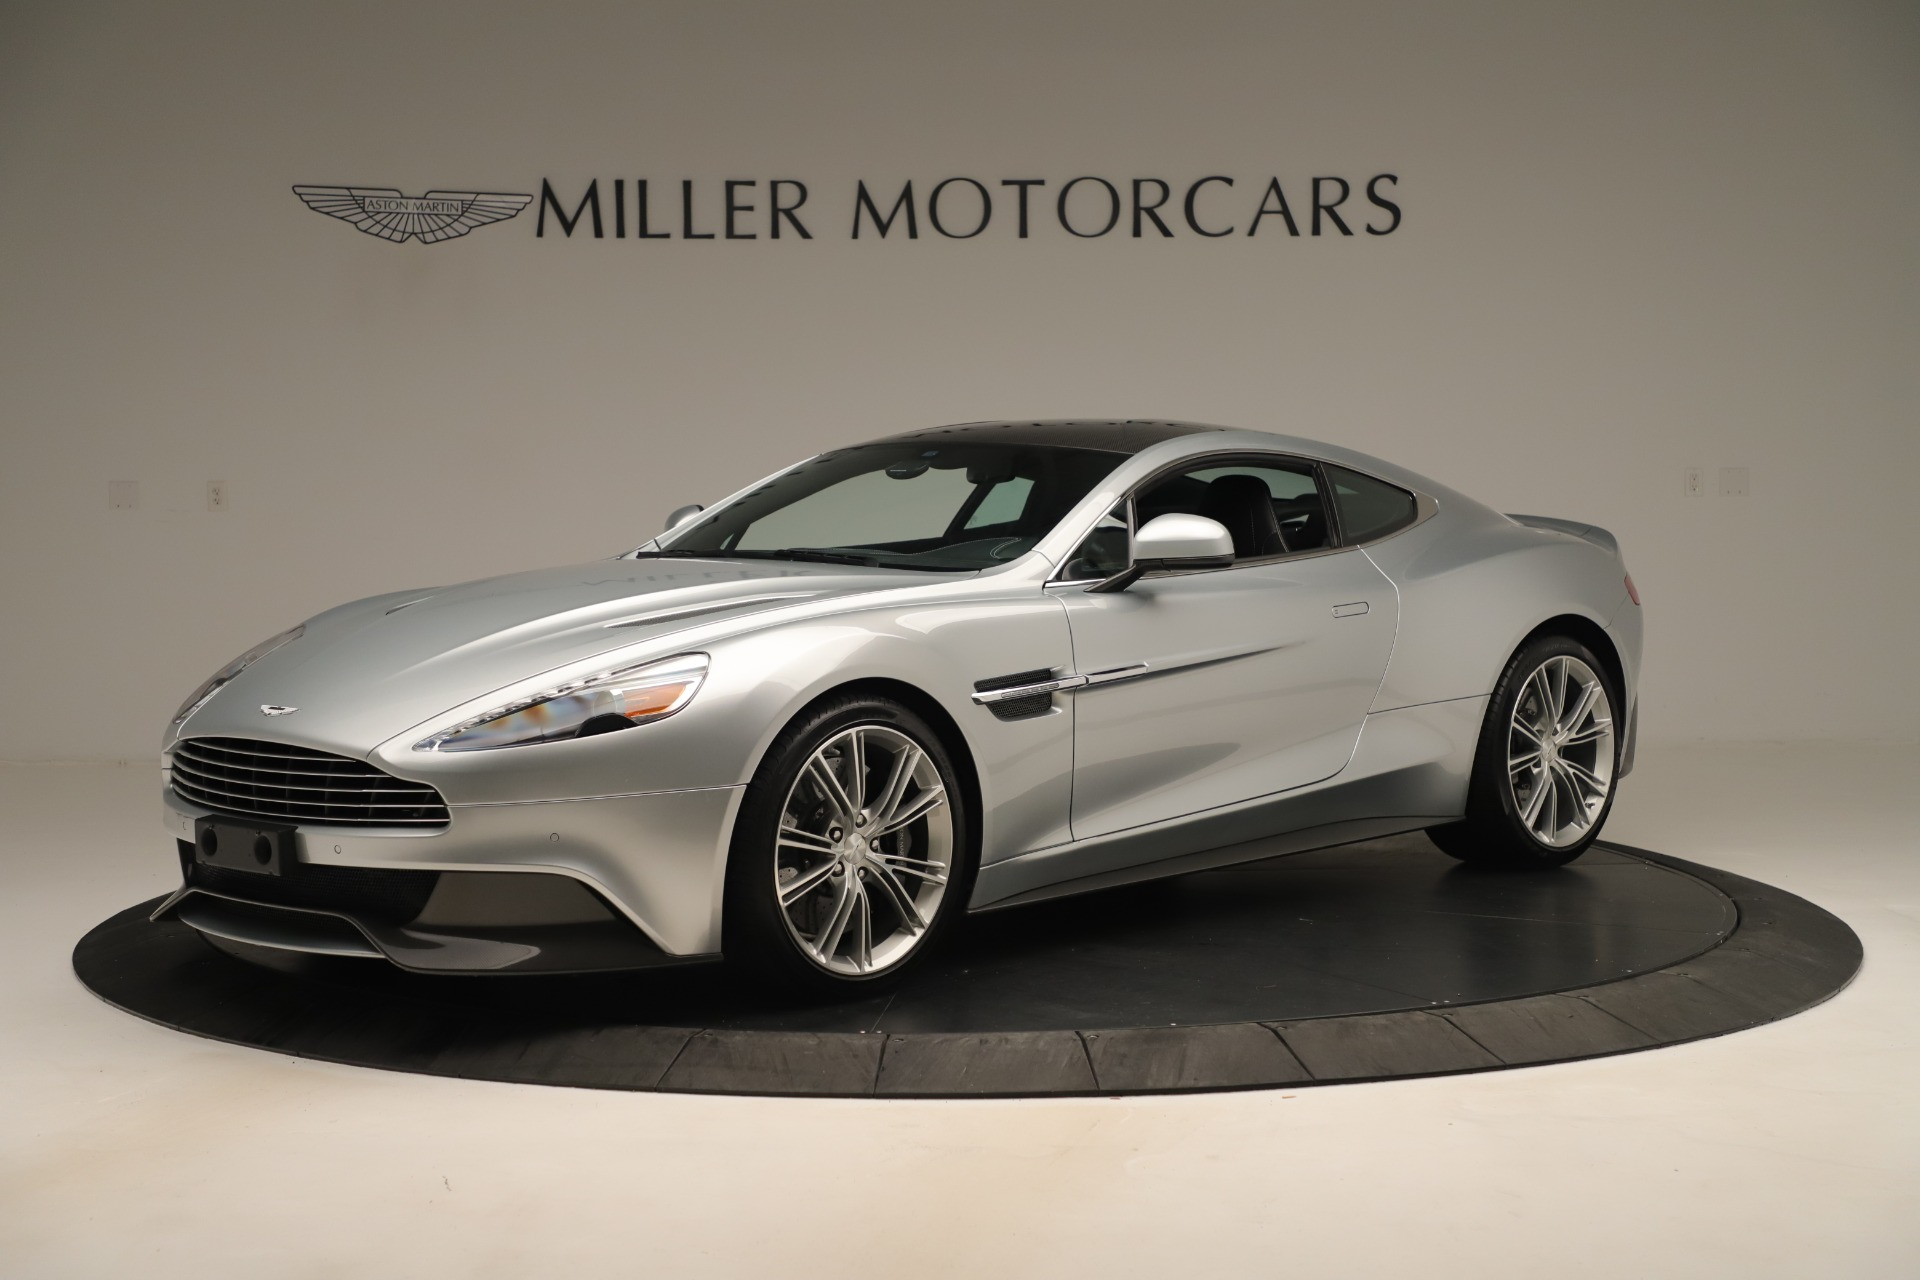 Used 2014 Aston Martin Vanquish Coupe for sale $116,900 at Bentley Greenwich in Greenwich CT 06830 1